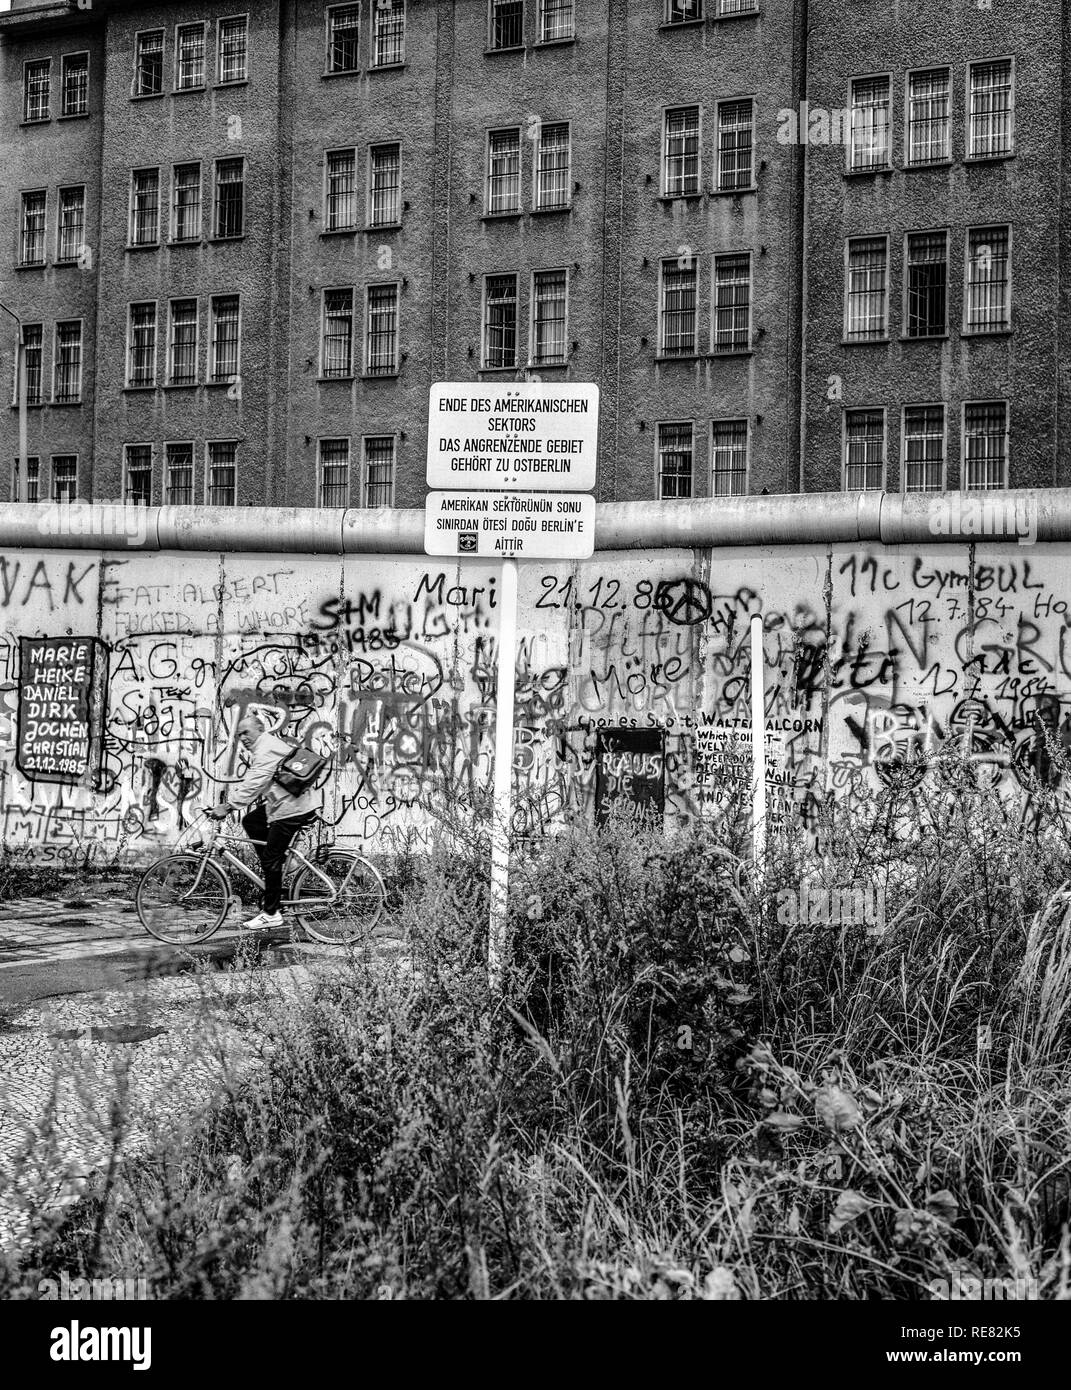 August 1986, Berlin Wall graffitis, warning sign for end of American sector, cyclist, East Berlin building, West Berlin side, Germany, Europe, - Stock Image